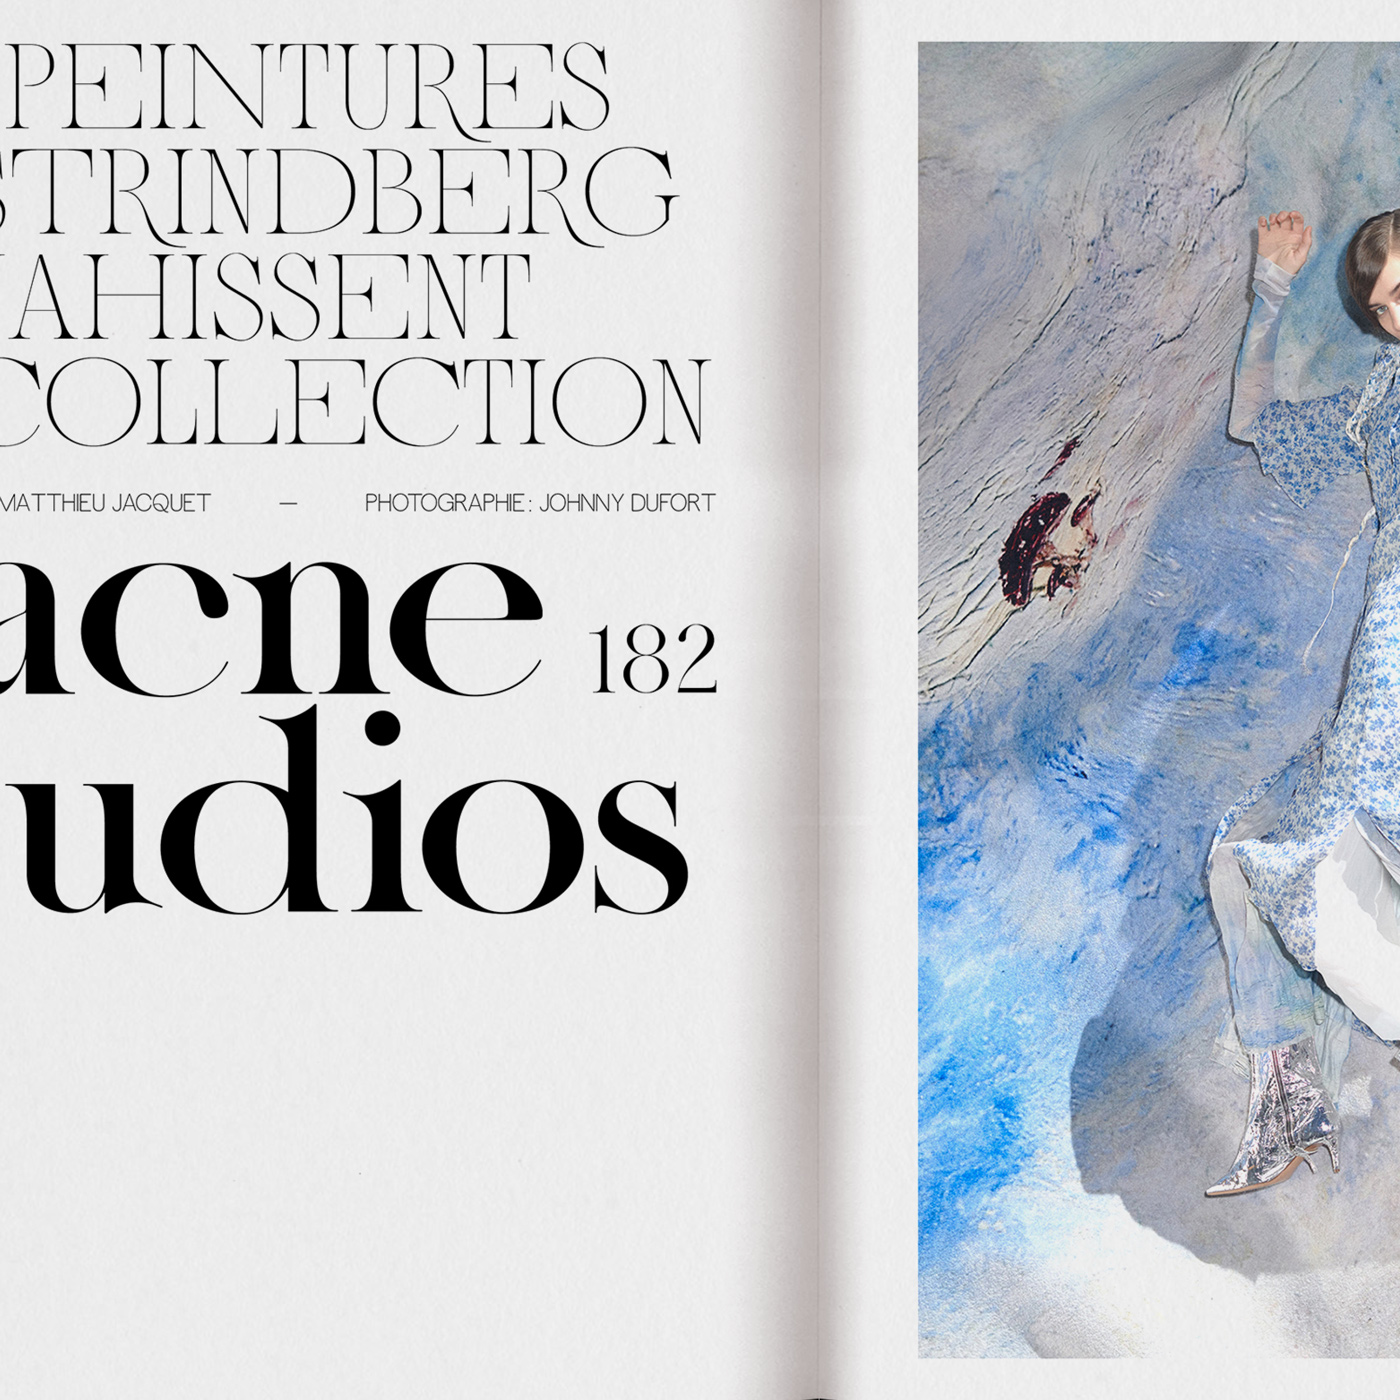 02 collide24 Lou Rainaldo Anne Dauphine Borione - The typeface 'Aliénor' by Anne-Dauphine Borione and Lou Rainaldo is a mixture of elegance and extravagance